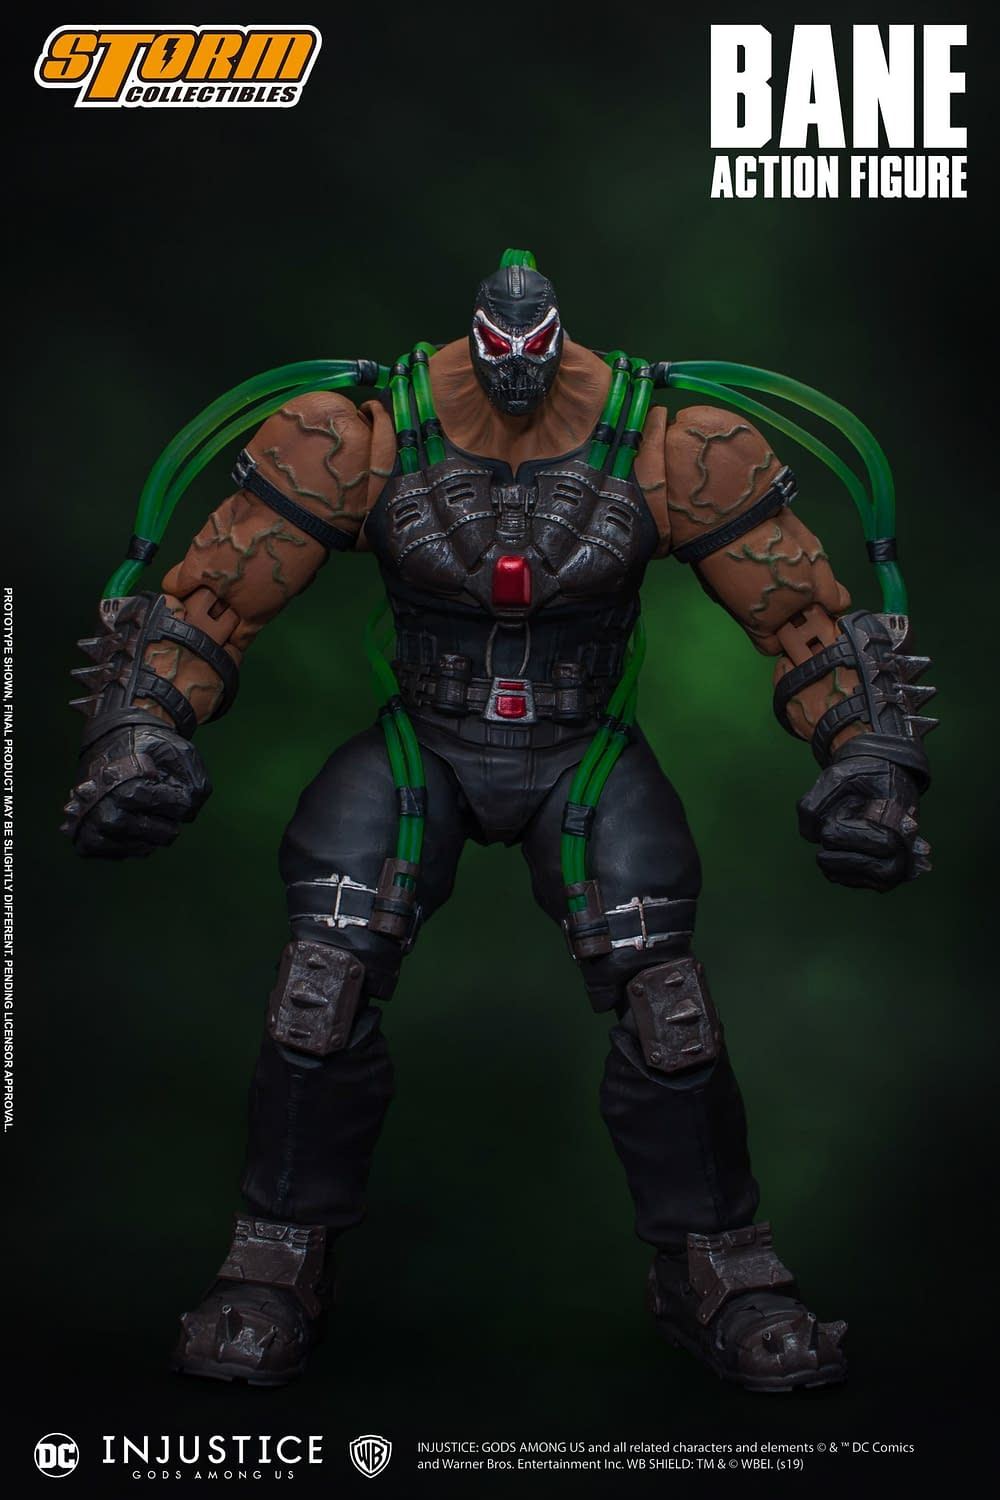 Bane Is Jucied and Ready to Rock with New Storm Collectibles Figure